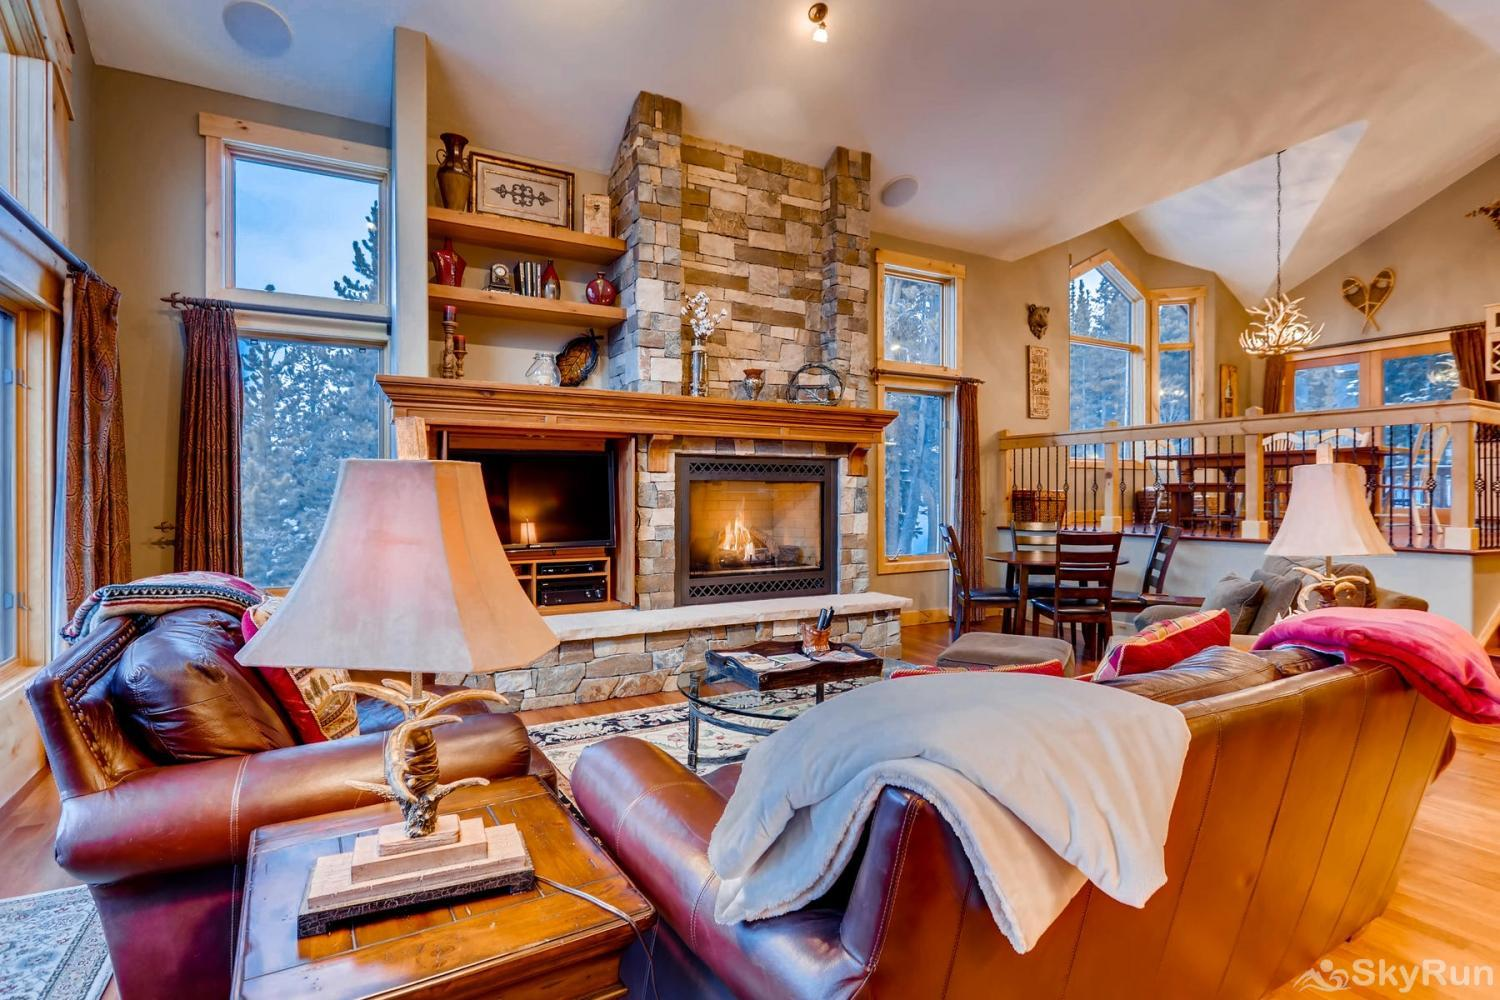 Nangle Woods Retreat Stay cozy warm by the gas fireplace on those cold winter nights